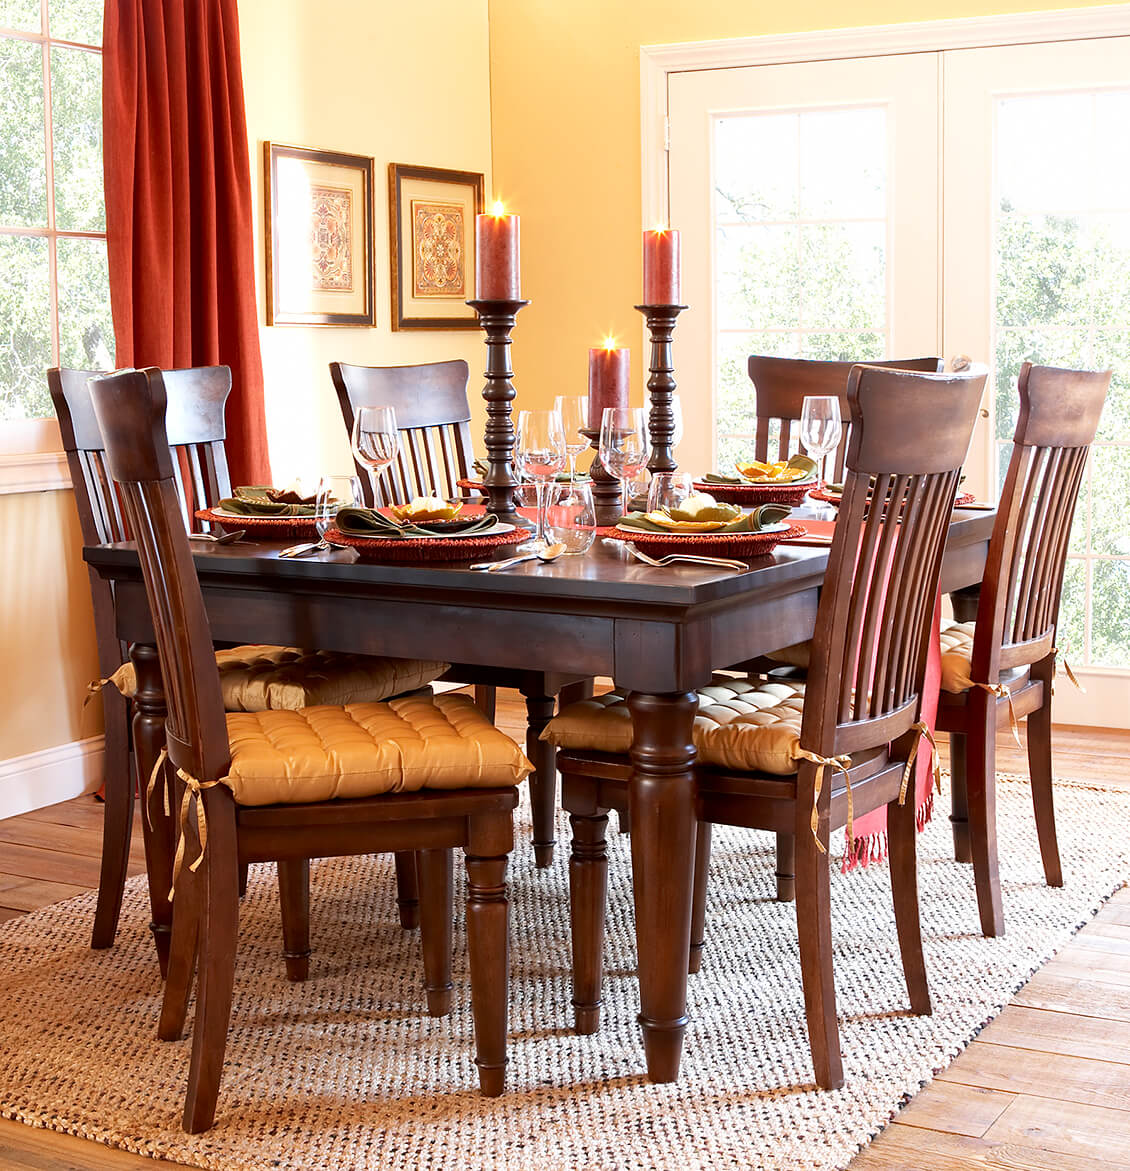 dining table interior design photography